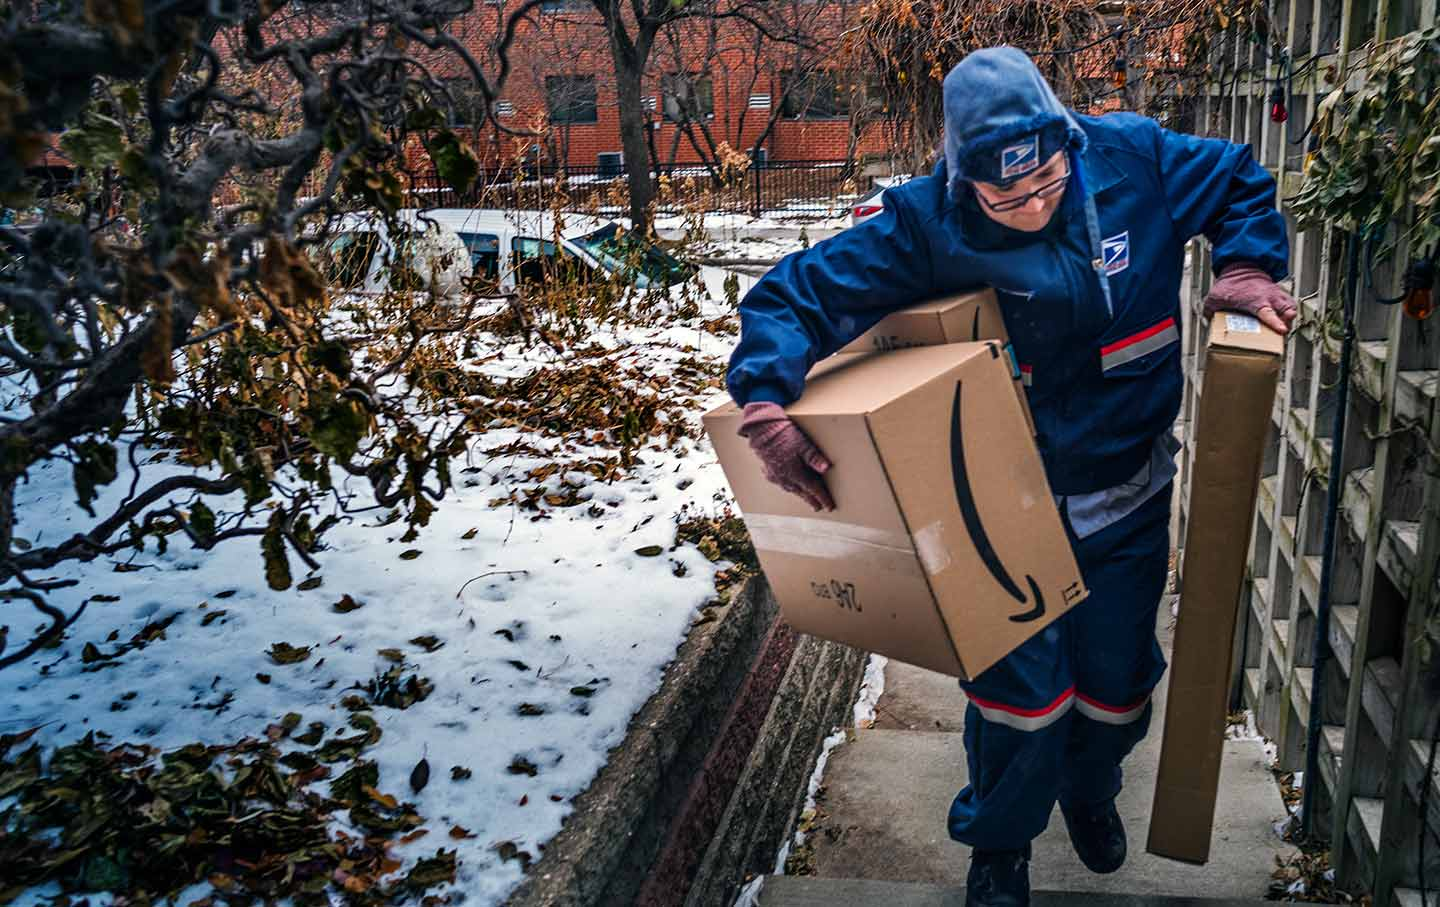 Postal service workers are shouldering the burden for amazon the nation - Post office working today ...